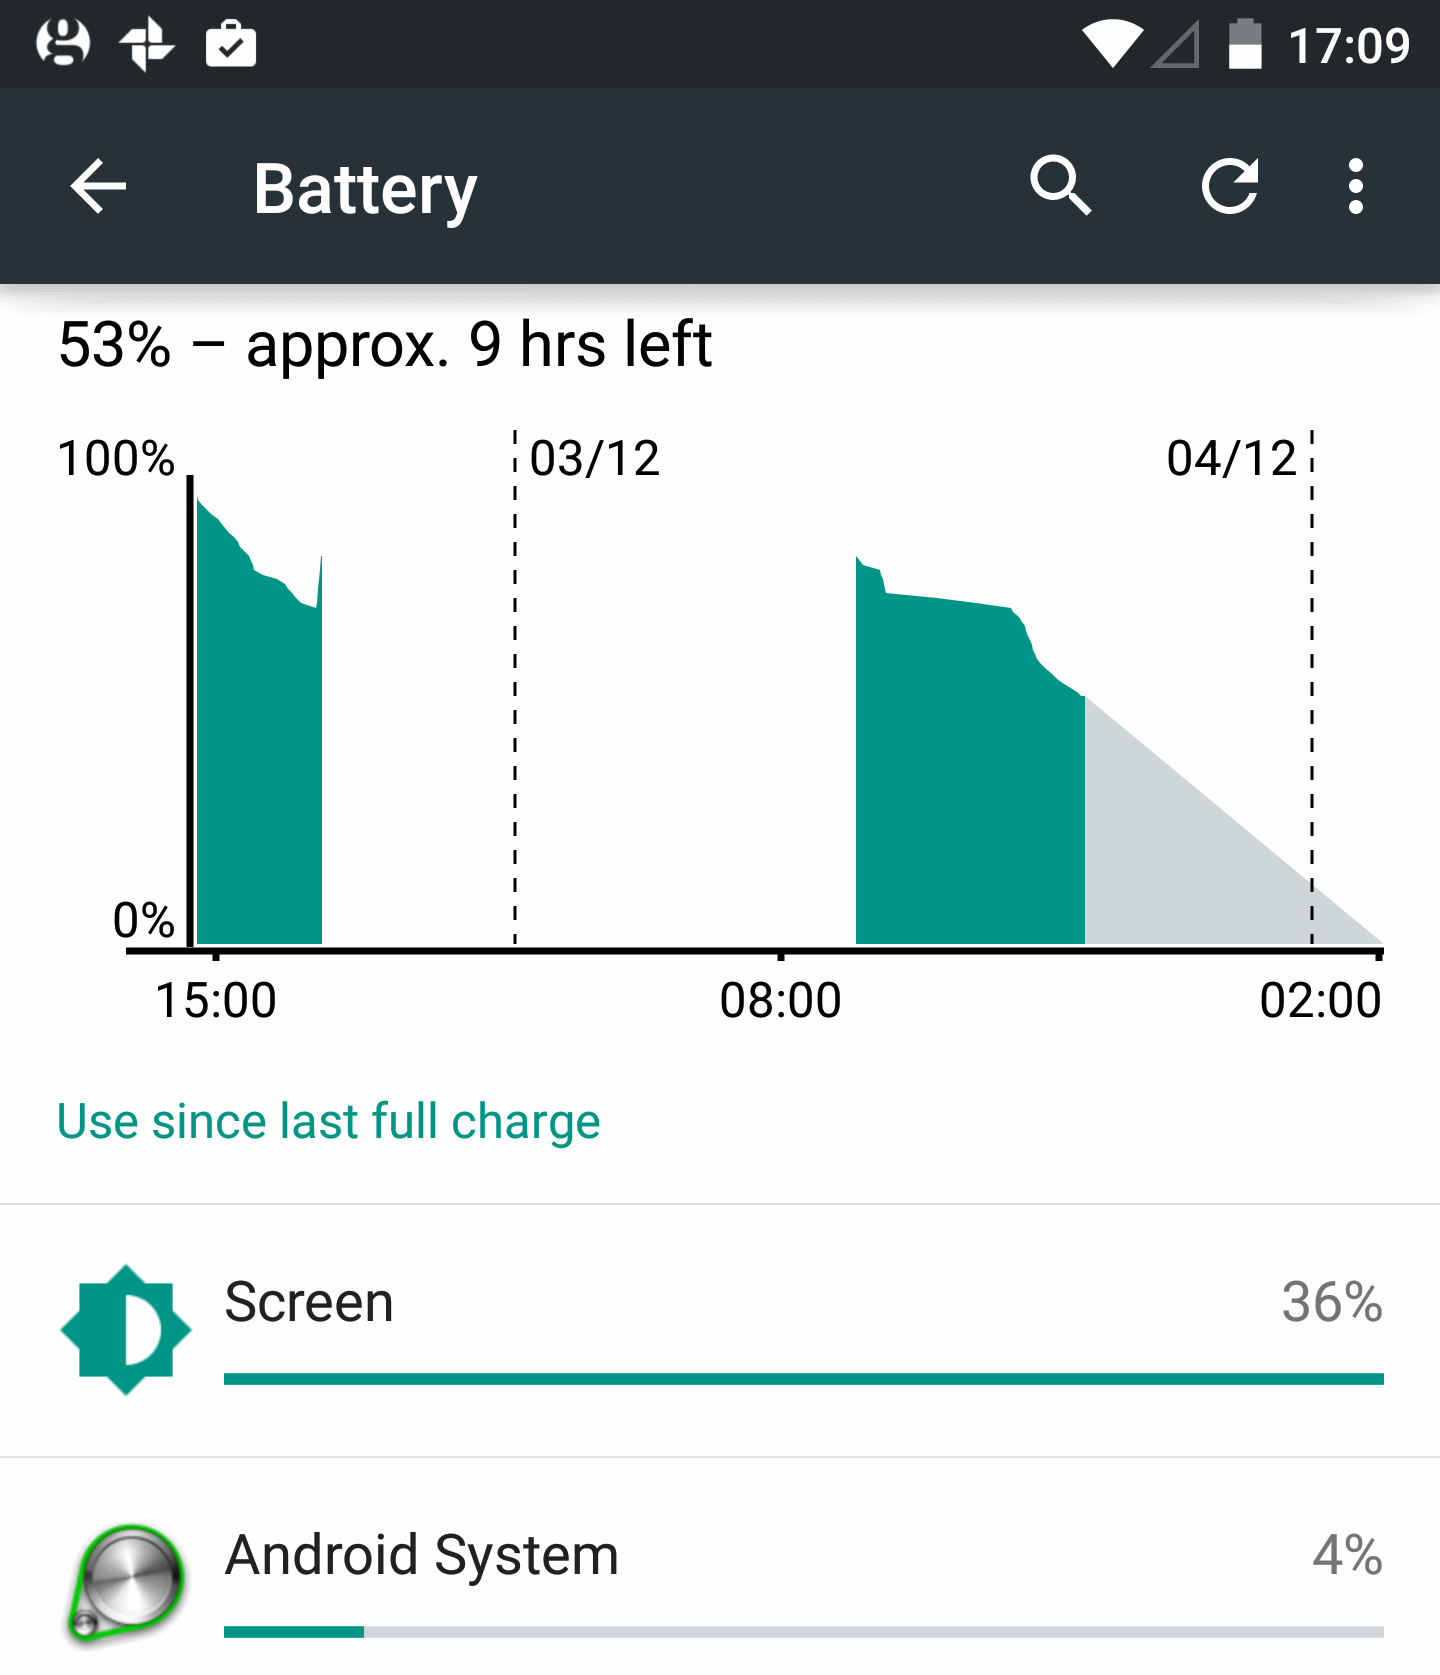 Nexus 6 battery life after 5.1 update